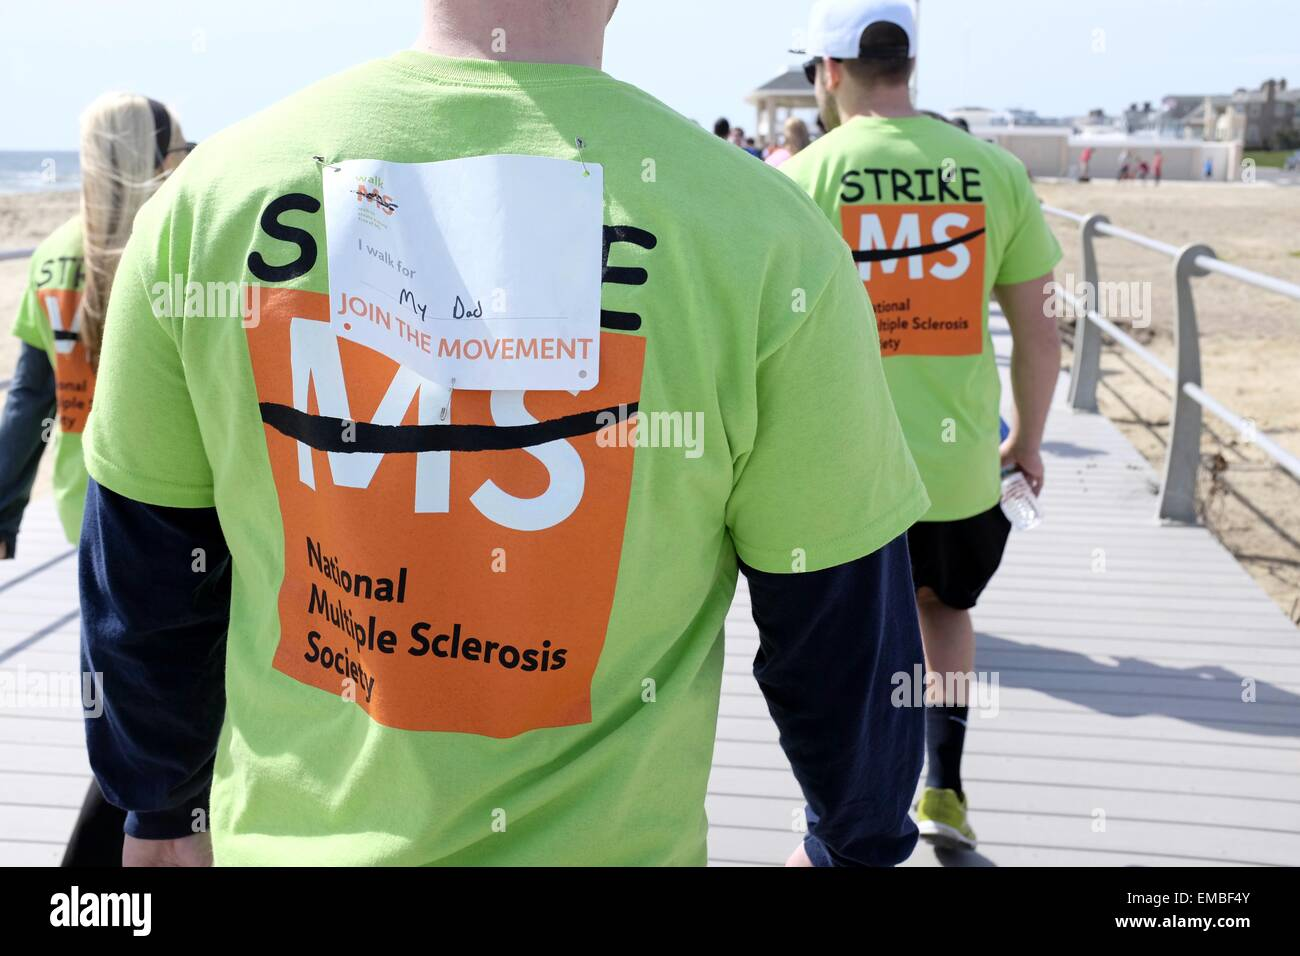 Participant in National MS Walk 2015 wearing a tag saying 'I walk for my Dad' - Stock Image